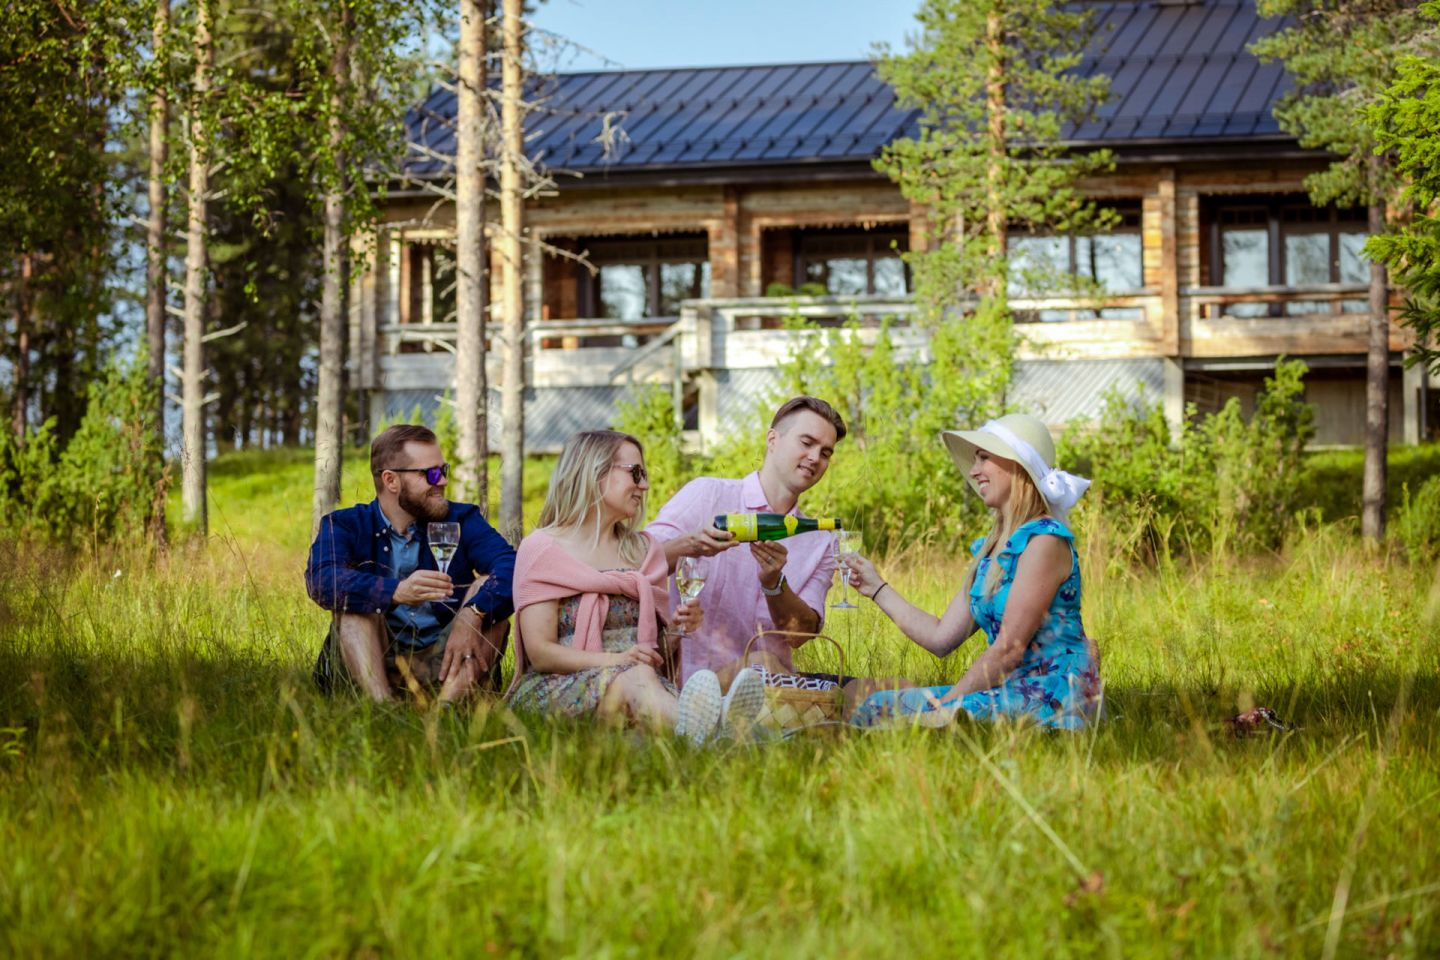 Sunday Morning Resort in Pyhä-Luosto, Finland, a special summer accommodation in Lapland